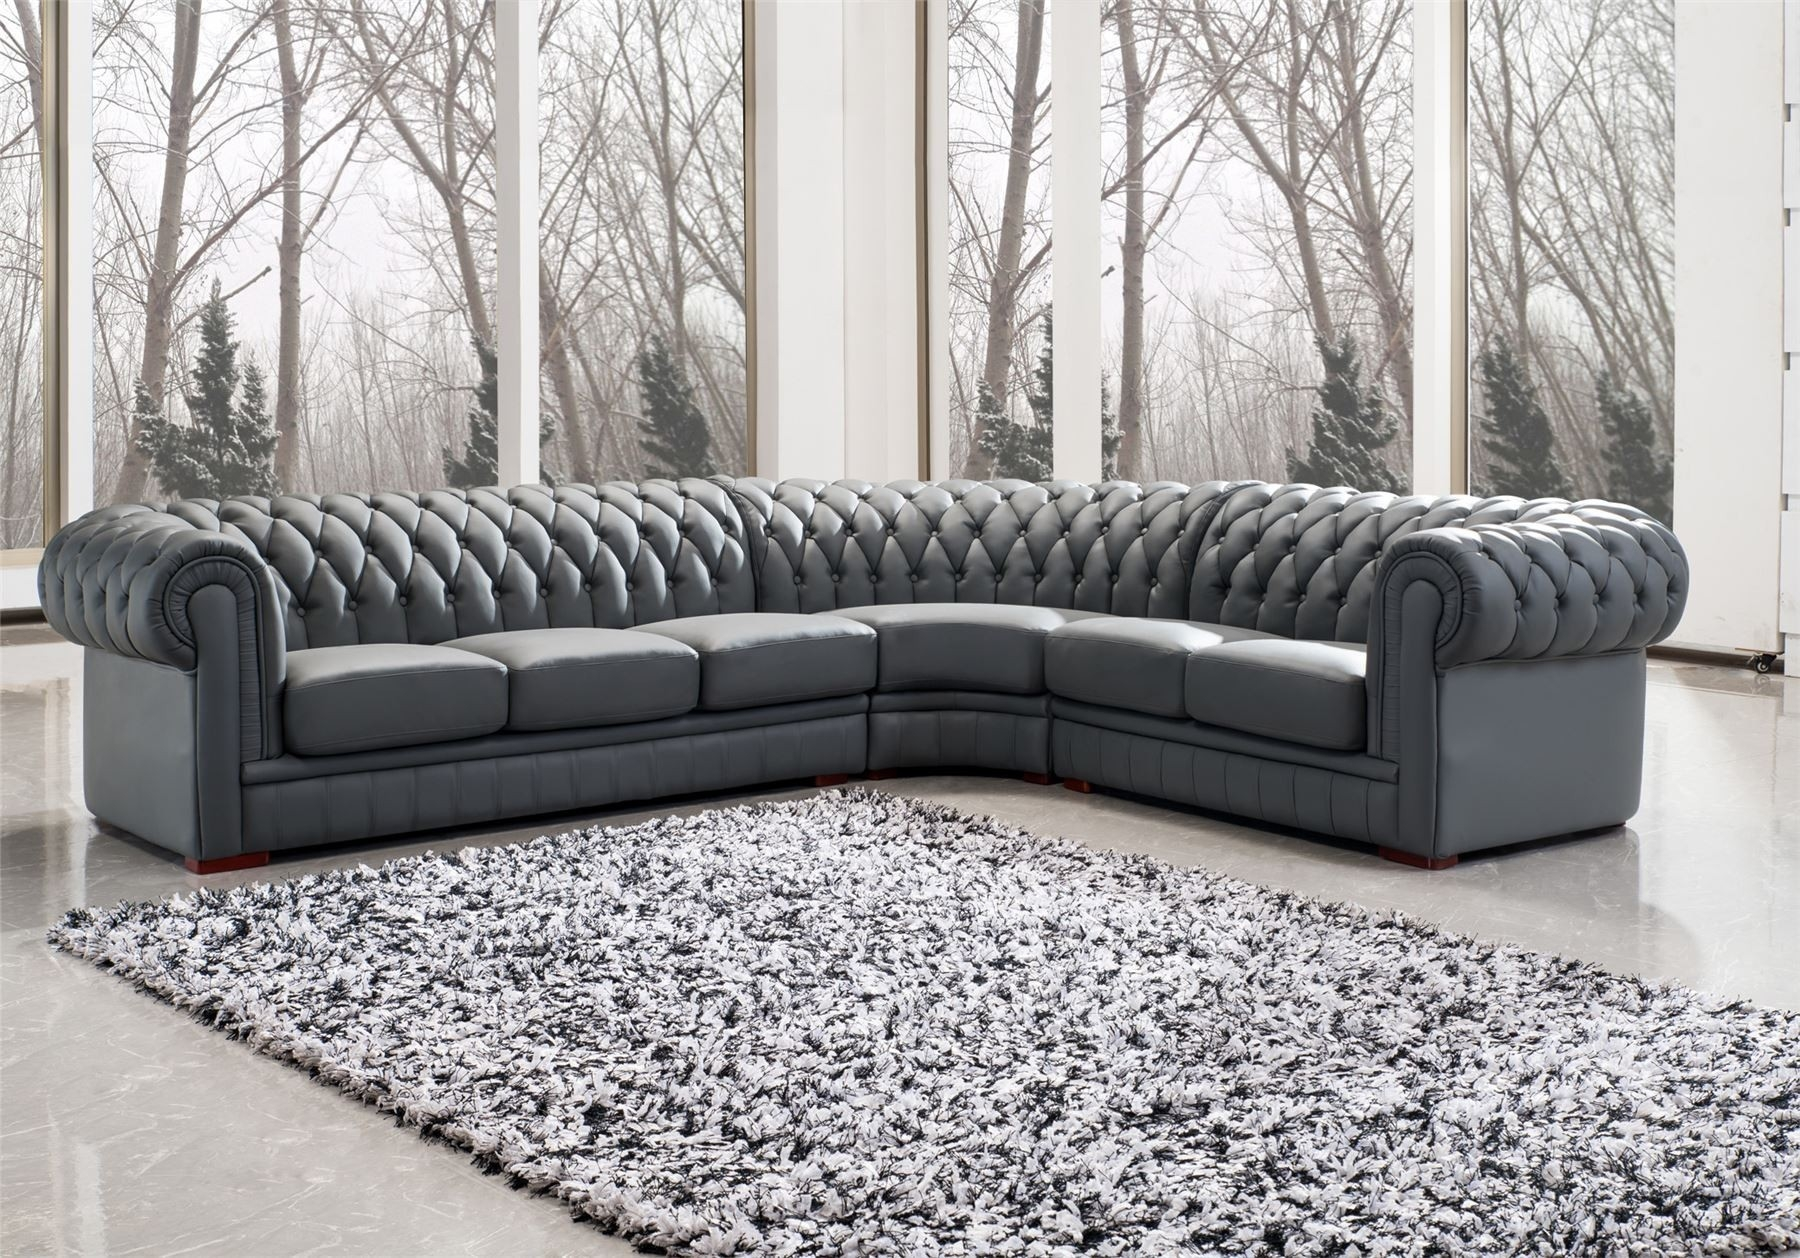 Photo Of Diana Dark Brown Leather Sectional Sofa Set - Dark grey leather sectional sofa